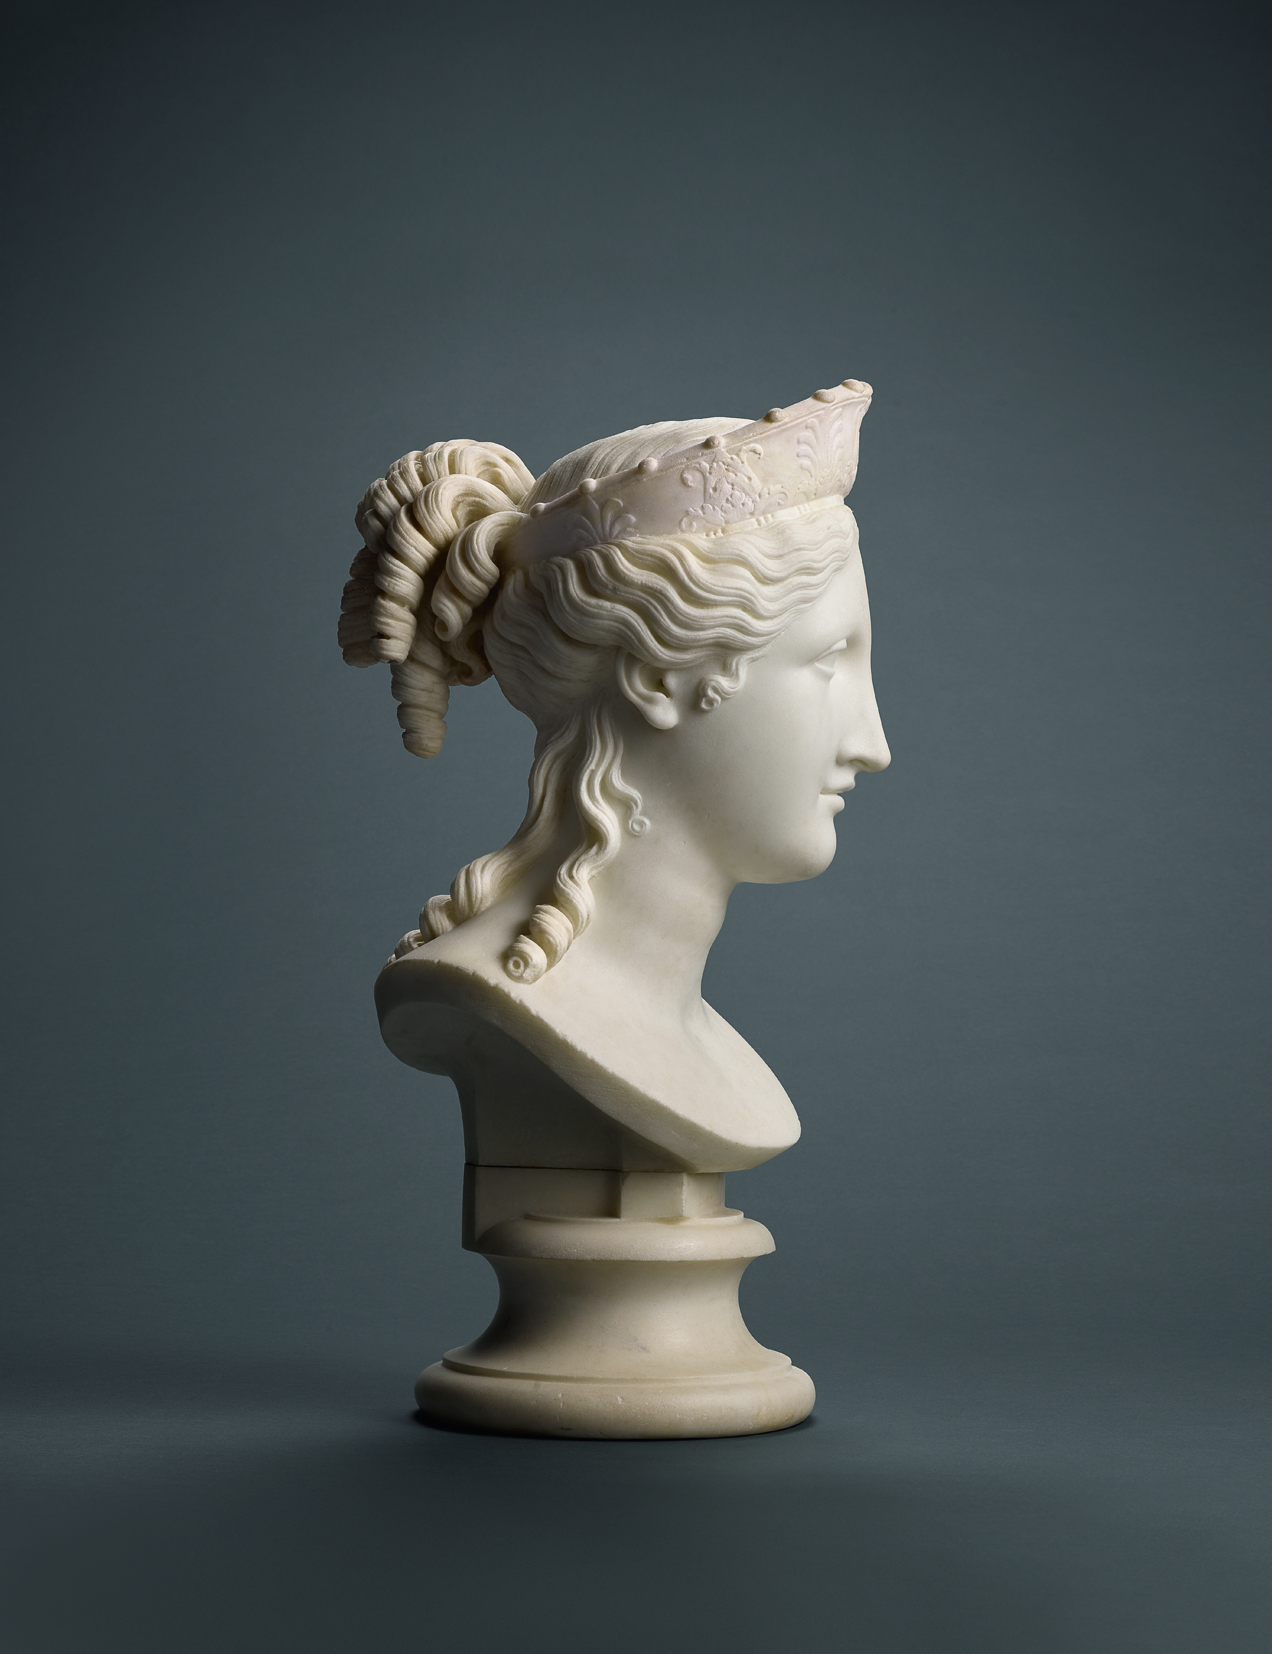 A Bust of Peace, sculpted in 1814 by Antonio Canova.